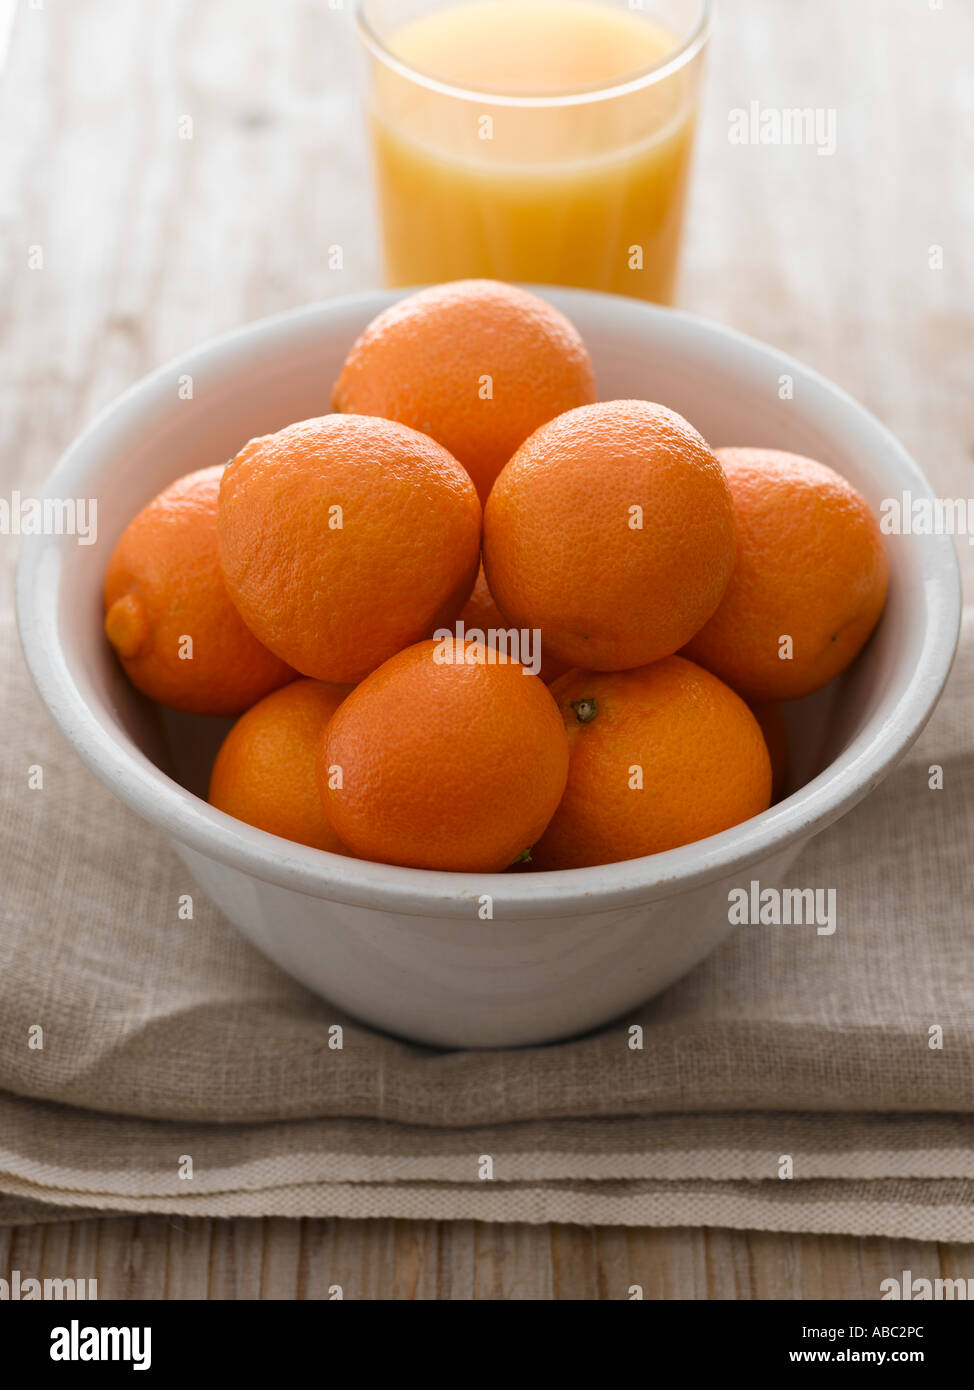 Bowl of oranges and juice - high end Hasselblad 61mb digital image - Stock Image